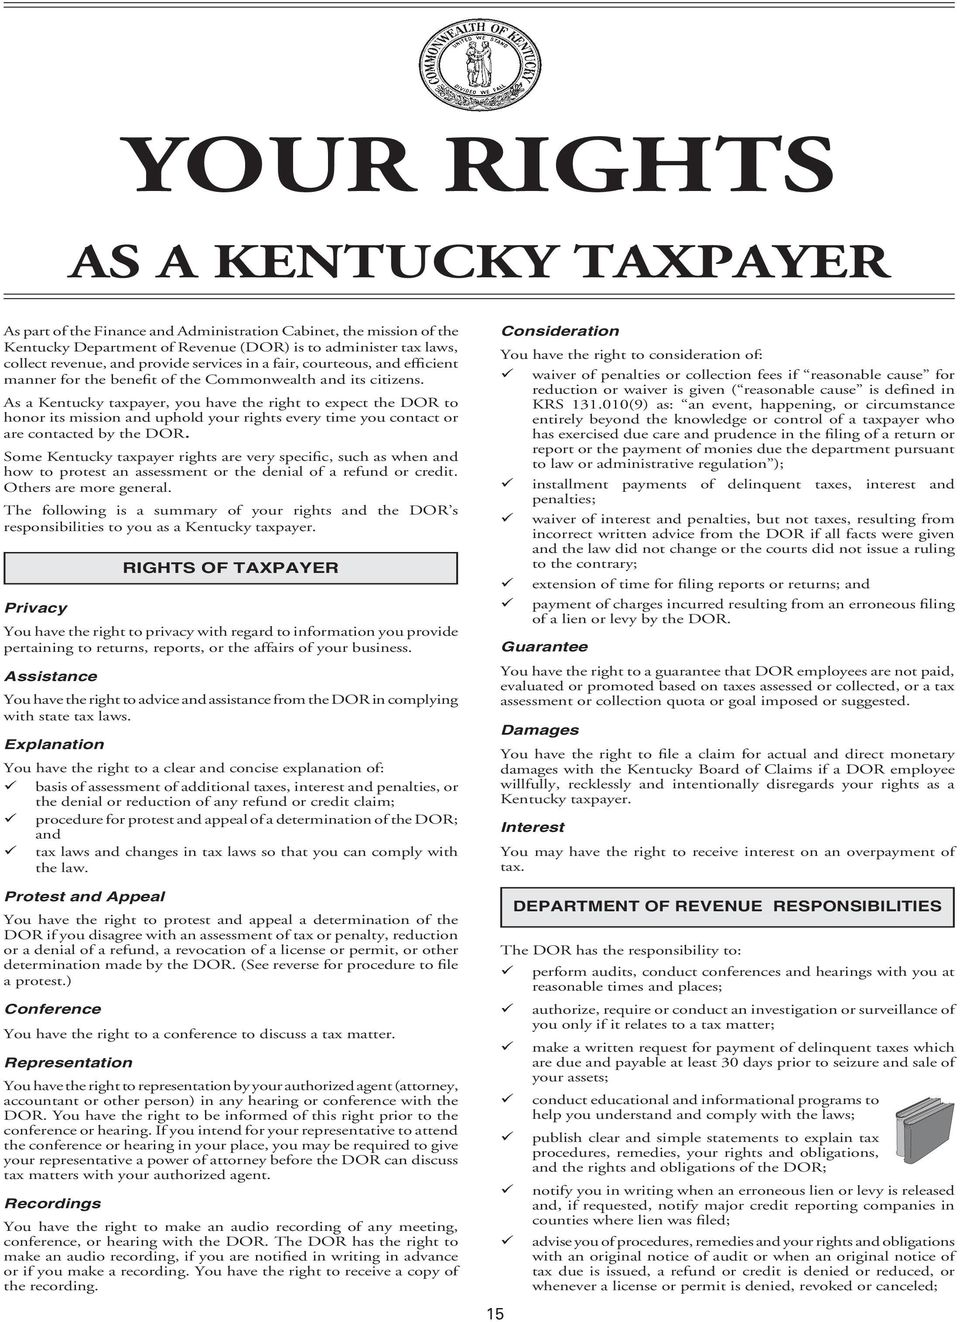 As a Kentucky taxpayer, you have the right to expect the DOR to honor its mission and uphold your rights every time you contact or are contacted by the DOR.